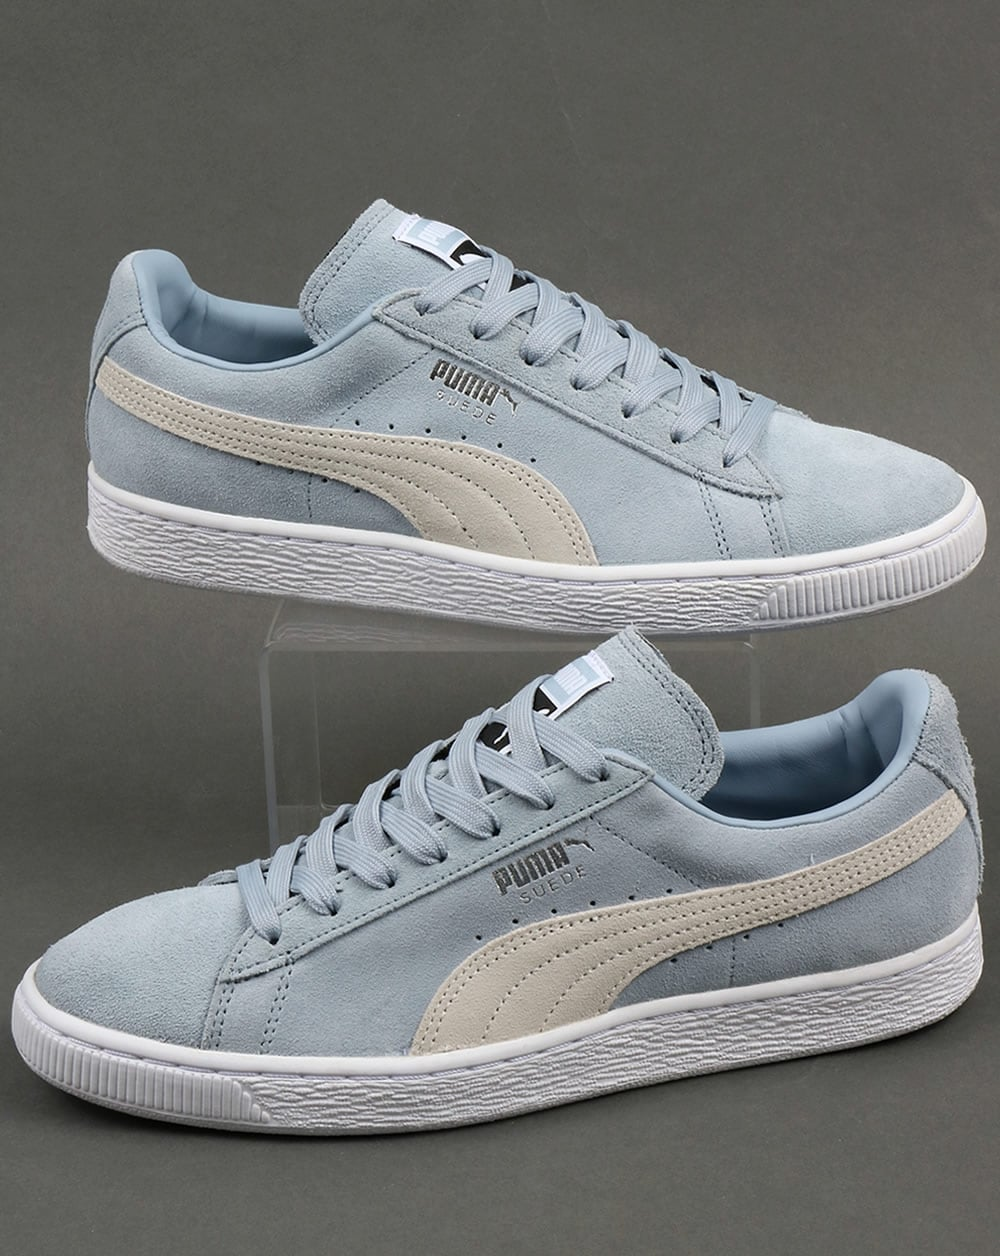 c020a096e15 Puma Suede Classic Trainers Sky Blue/White,shoes,archive,originals